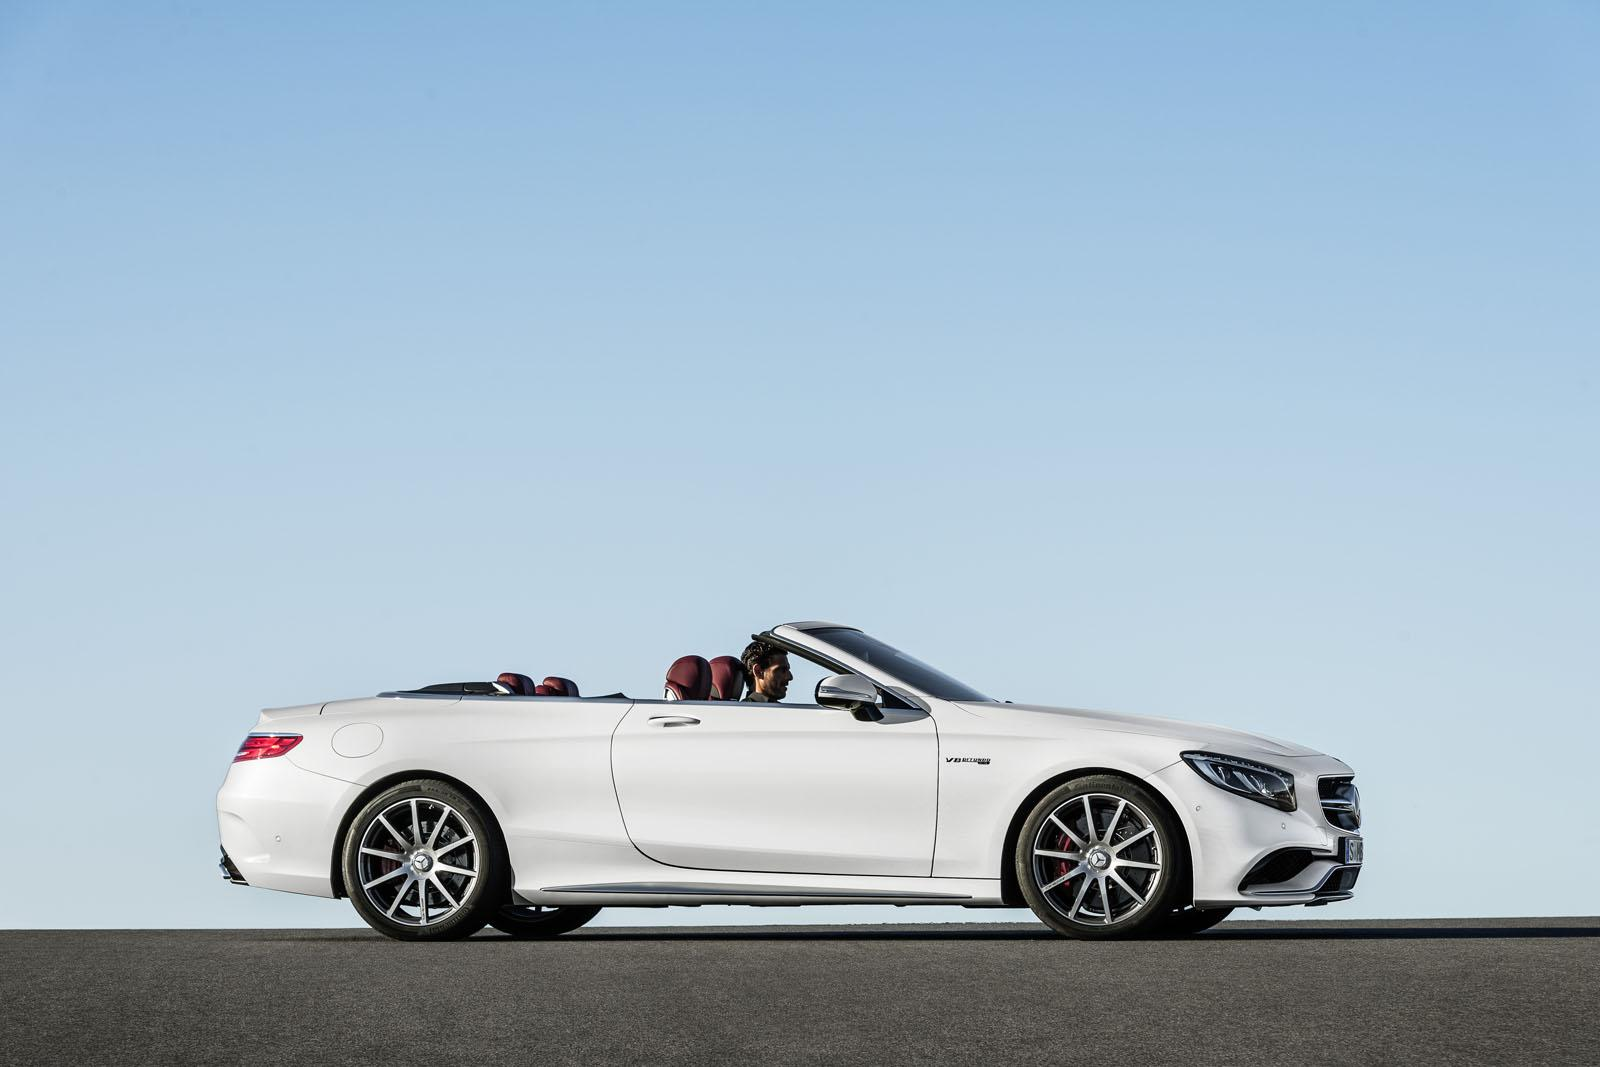 2016 Mercedes-AMG S 63 Cabriolet side unveiled